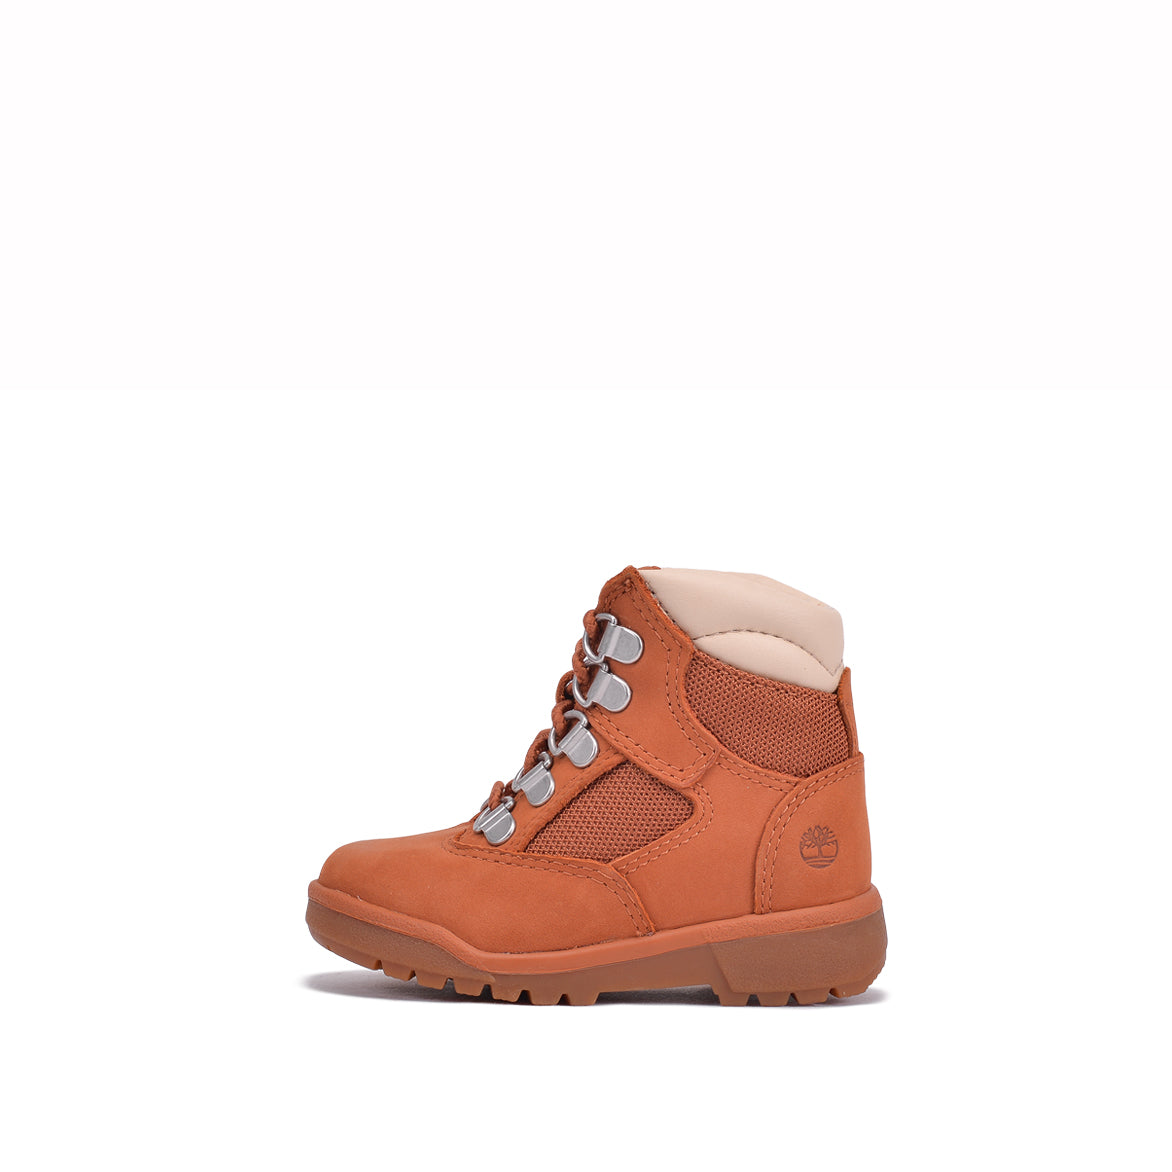 "WATERPROOF 6"" FIELD BOOT (TODDLER) - BURNT SIENNA"